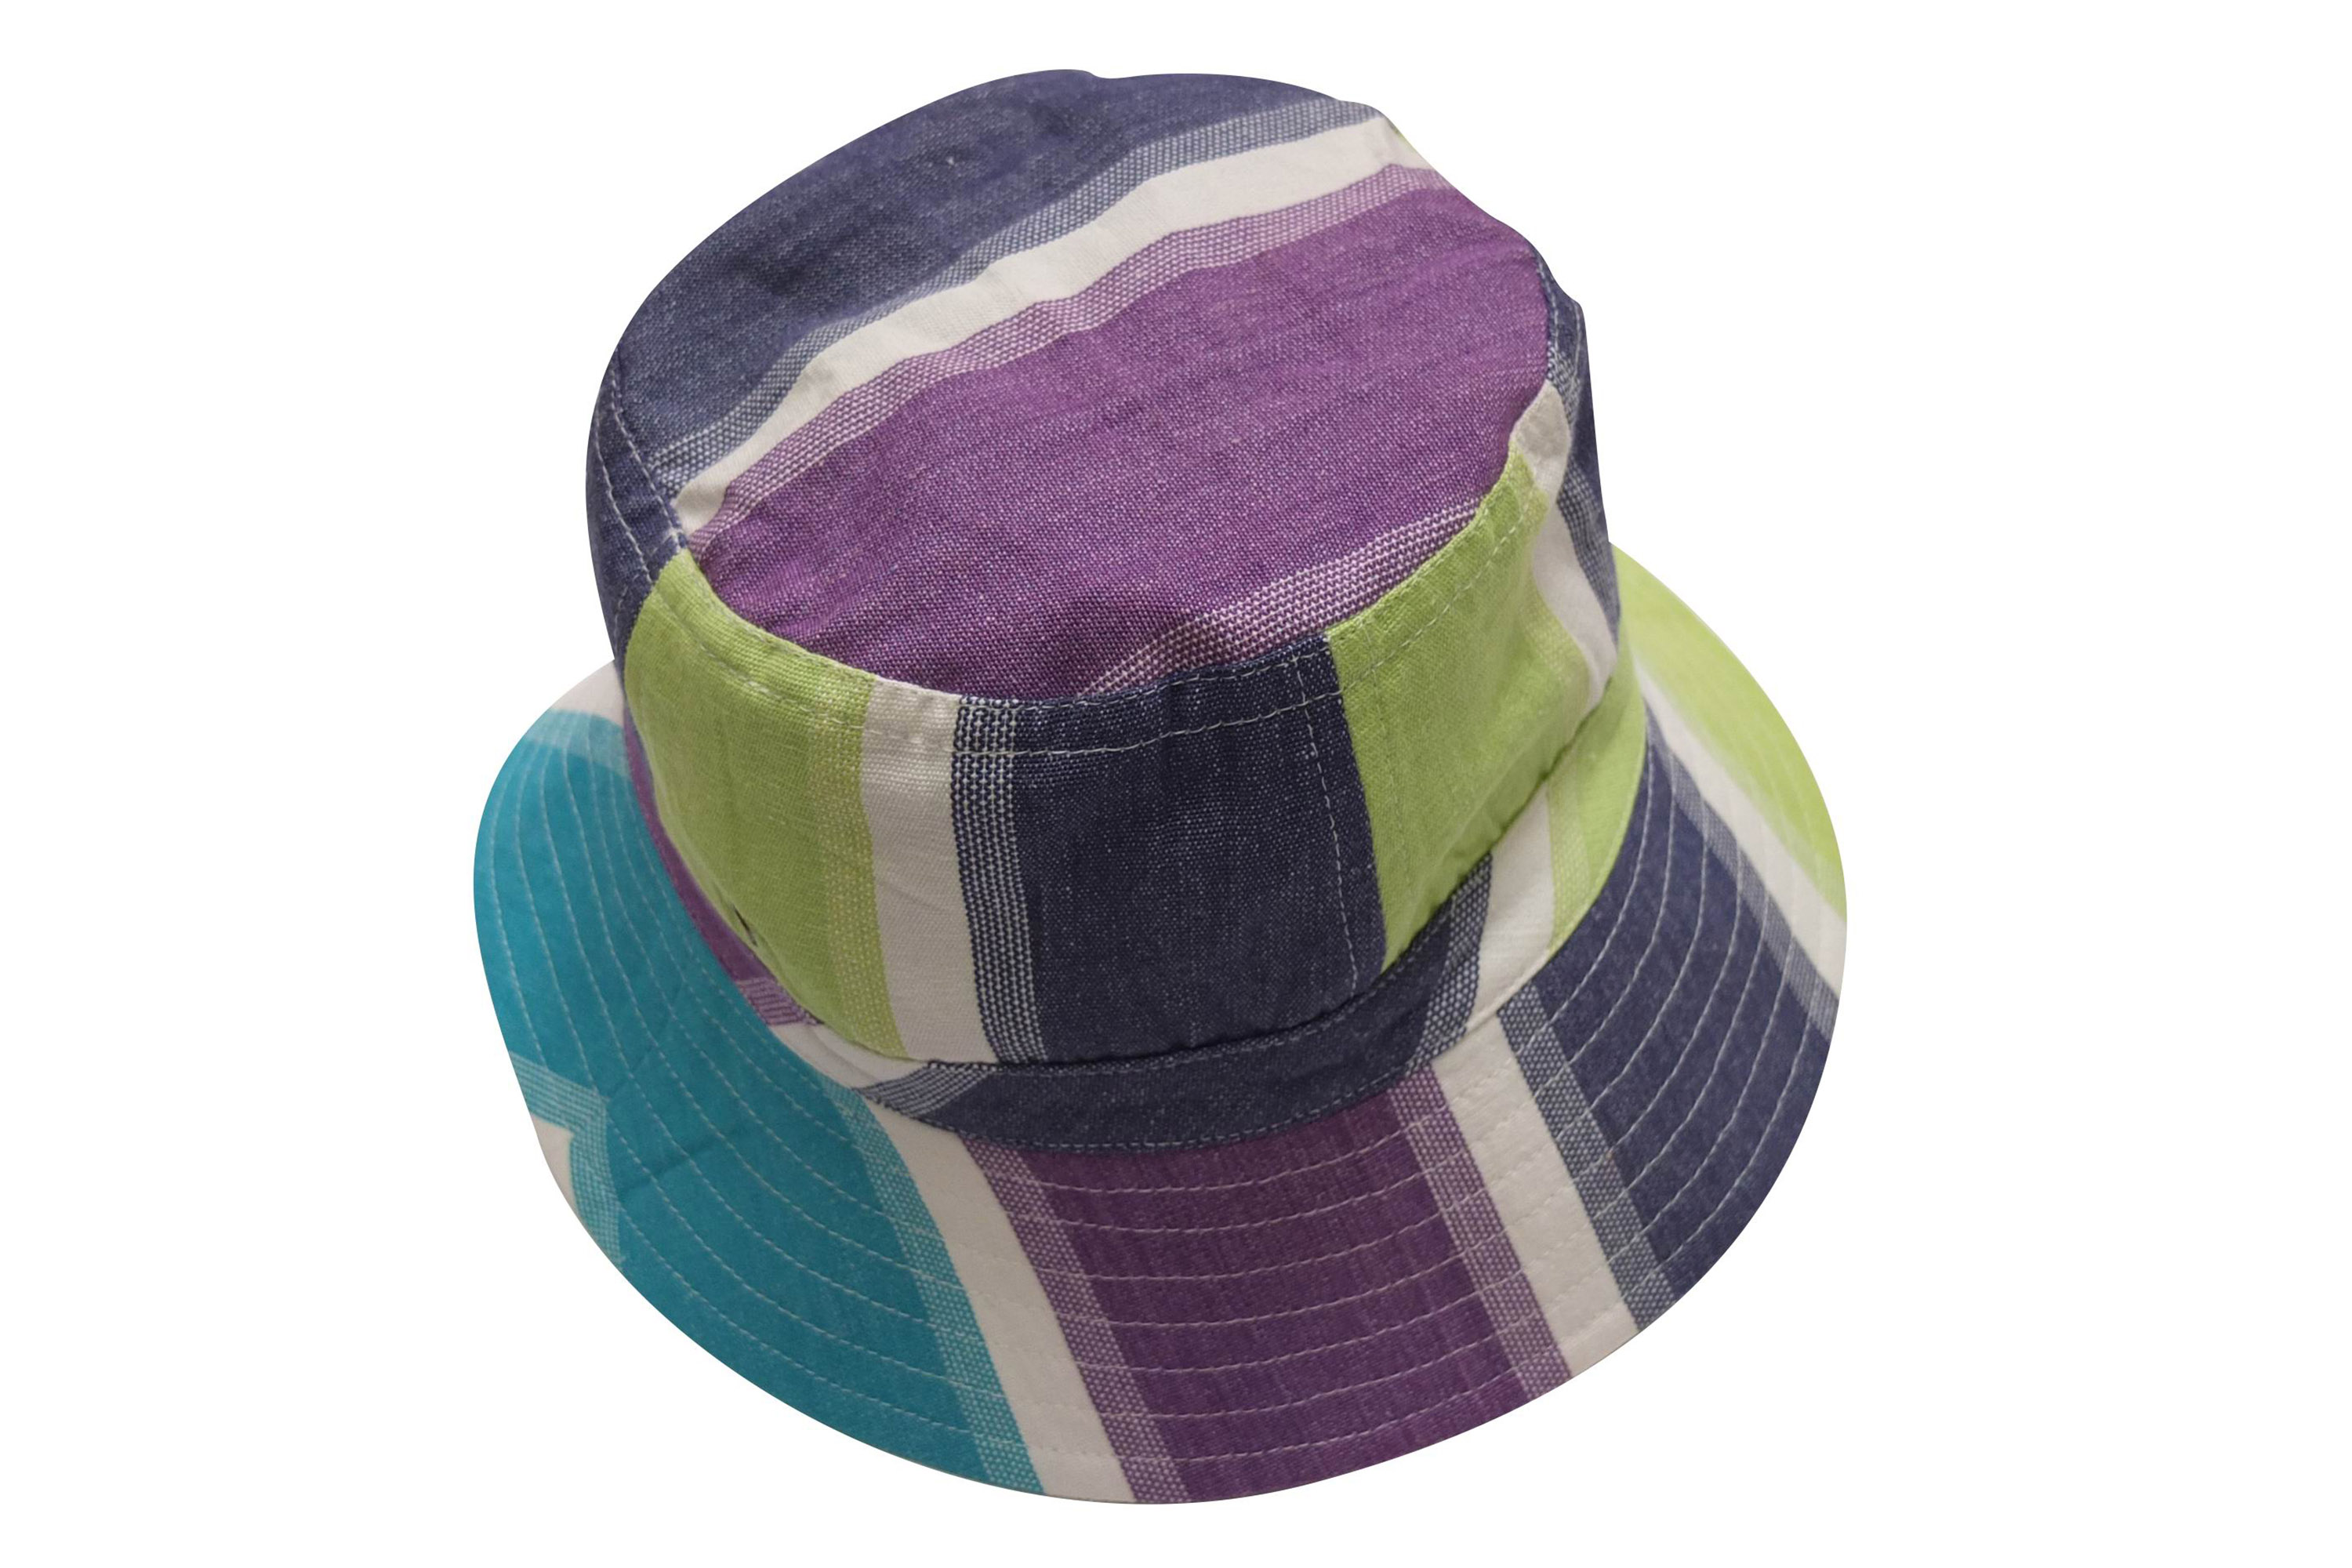 Striped Sun Hats | Sun Protection Hat Lime Green, Turquoise, White Stripes